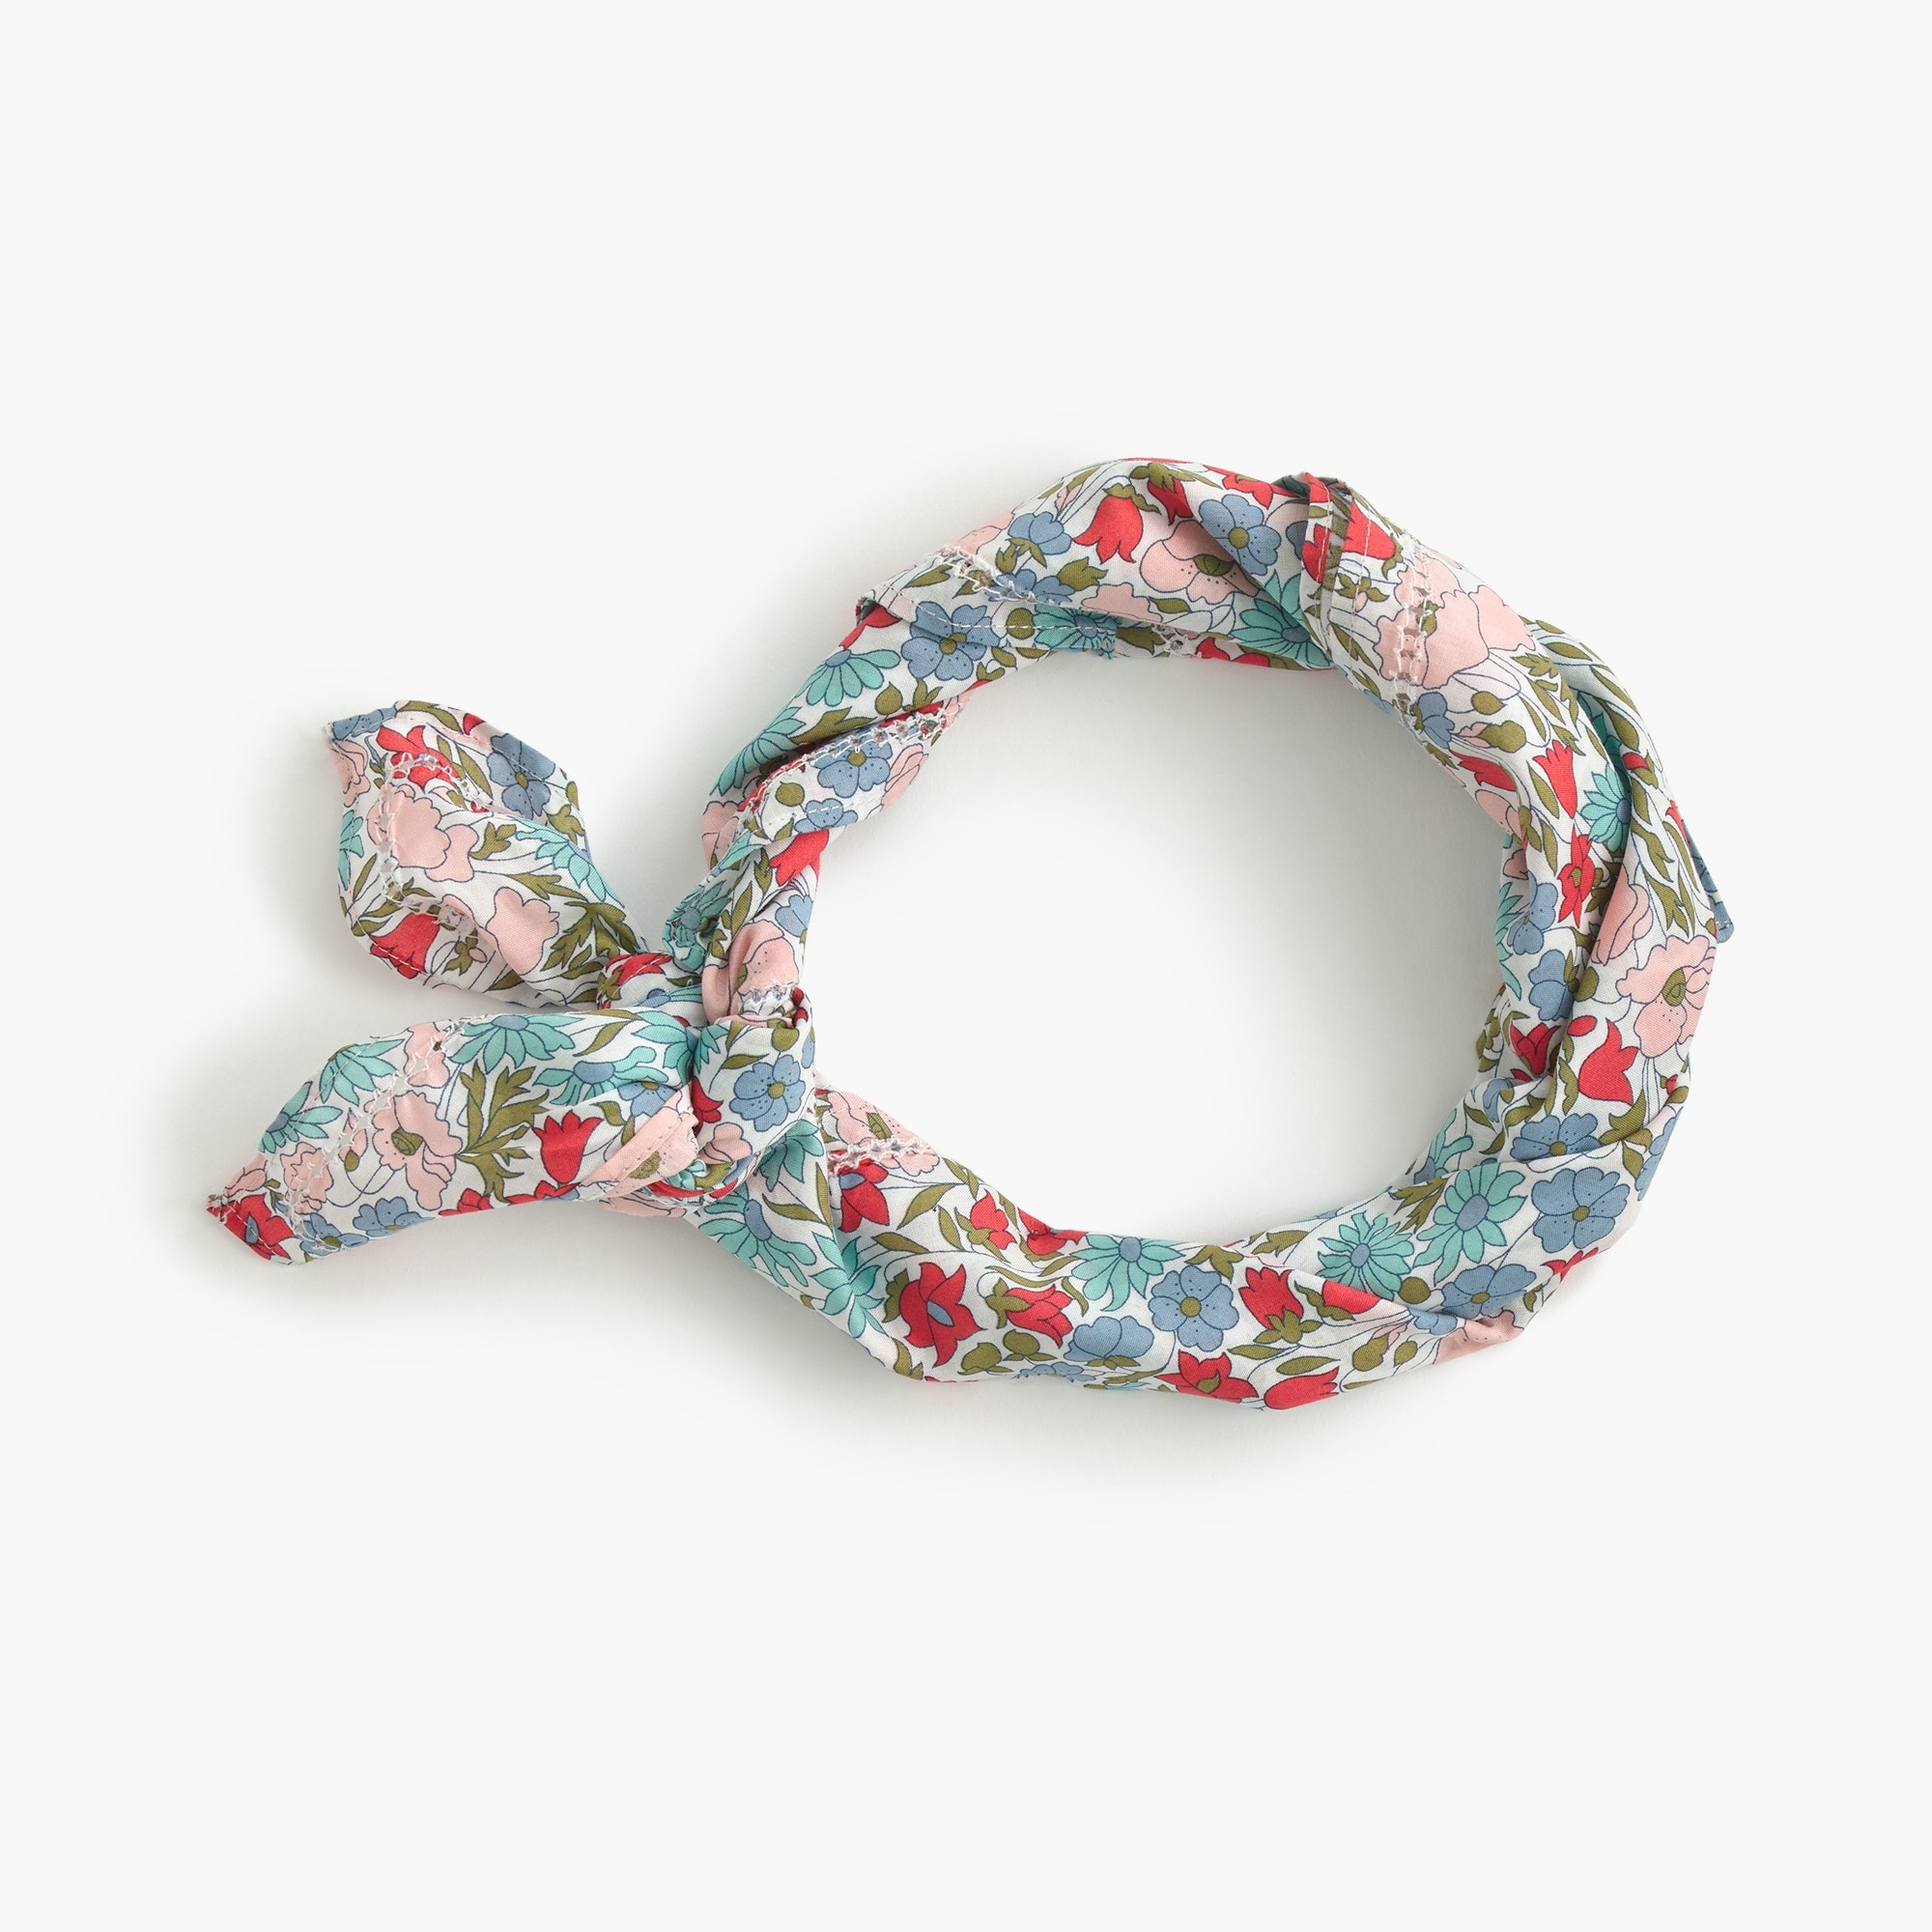 Bandanain Liberty® poppy and daisy floral